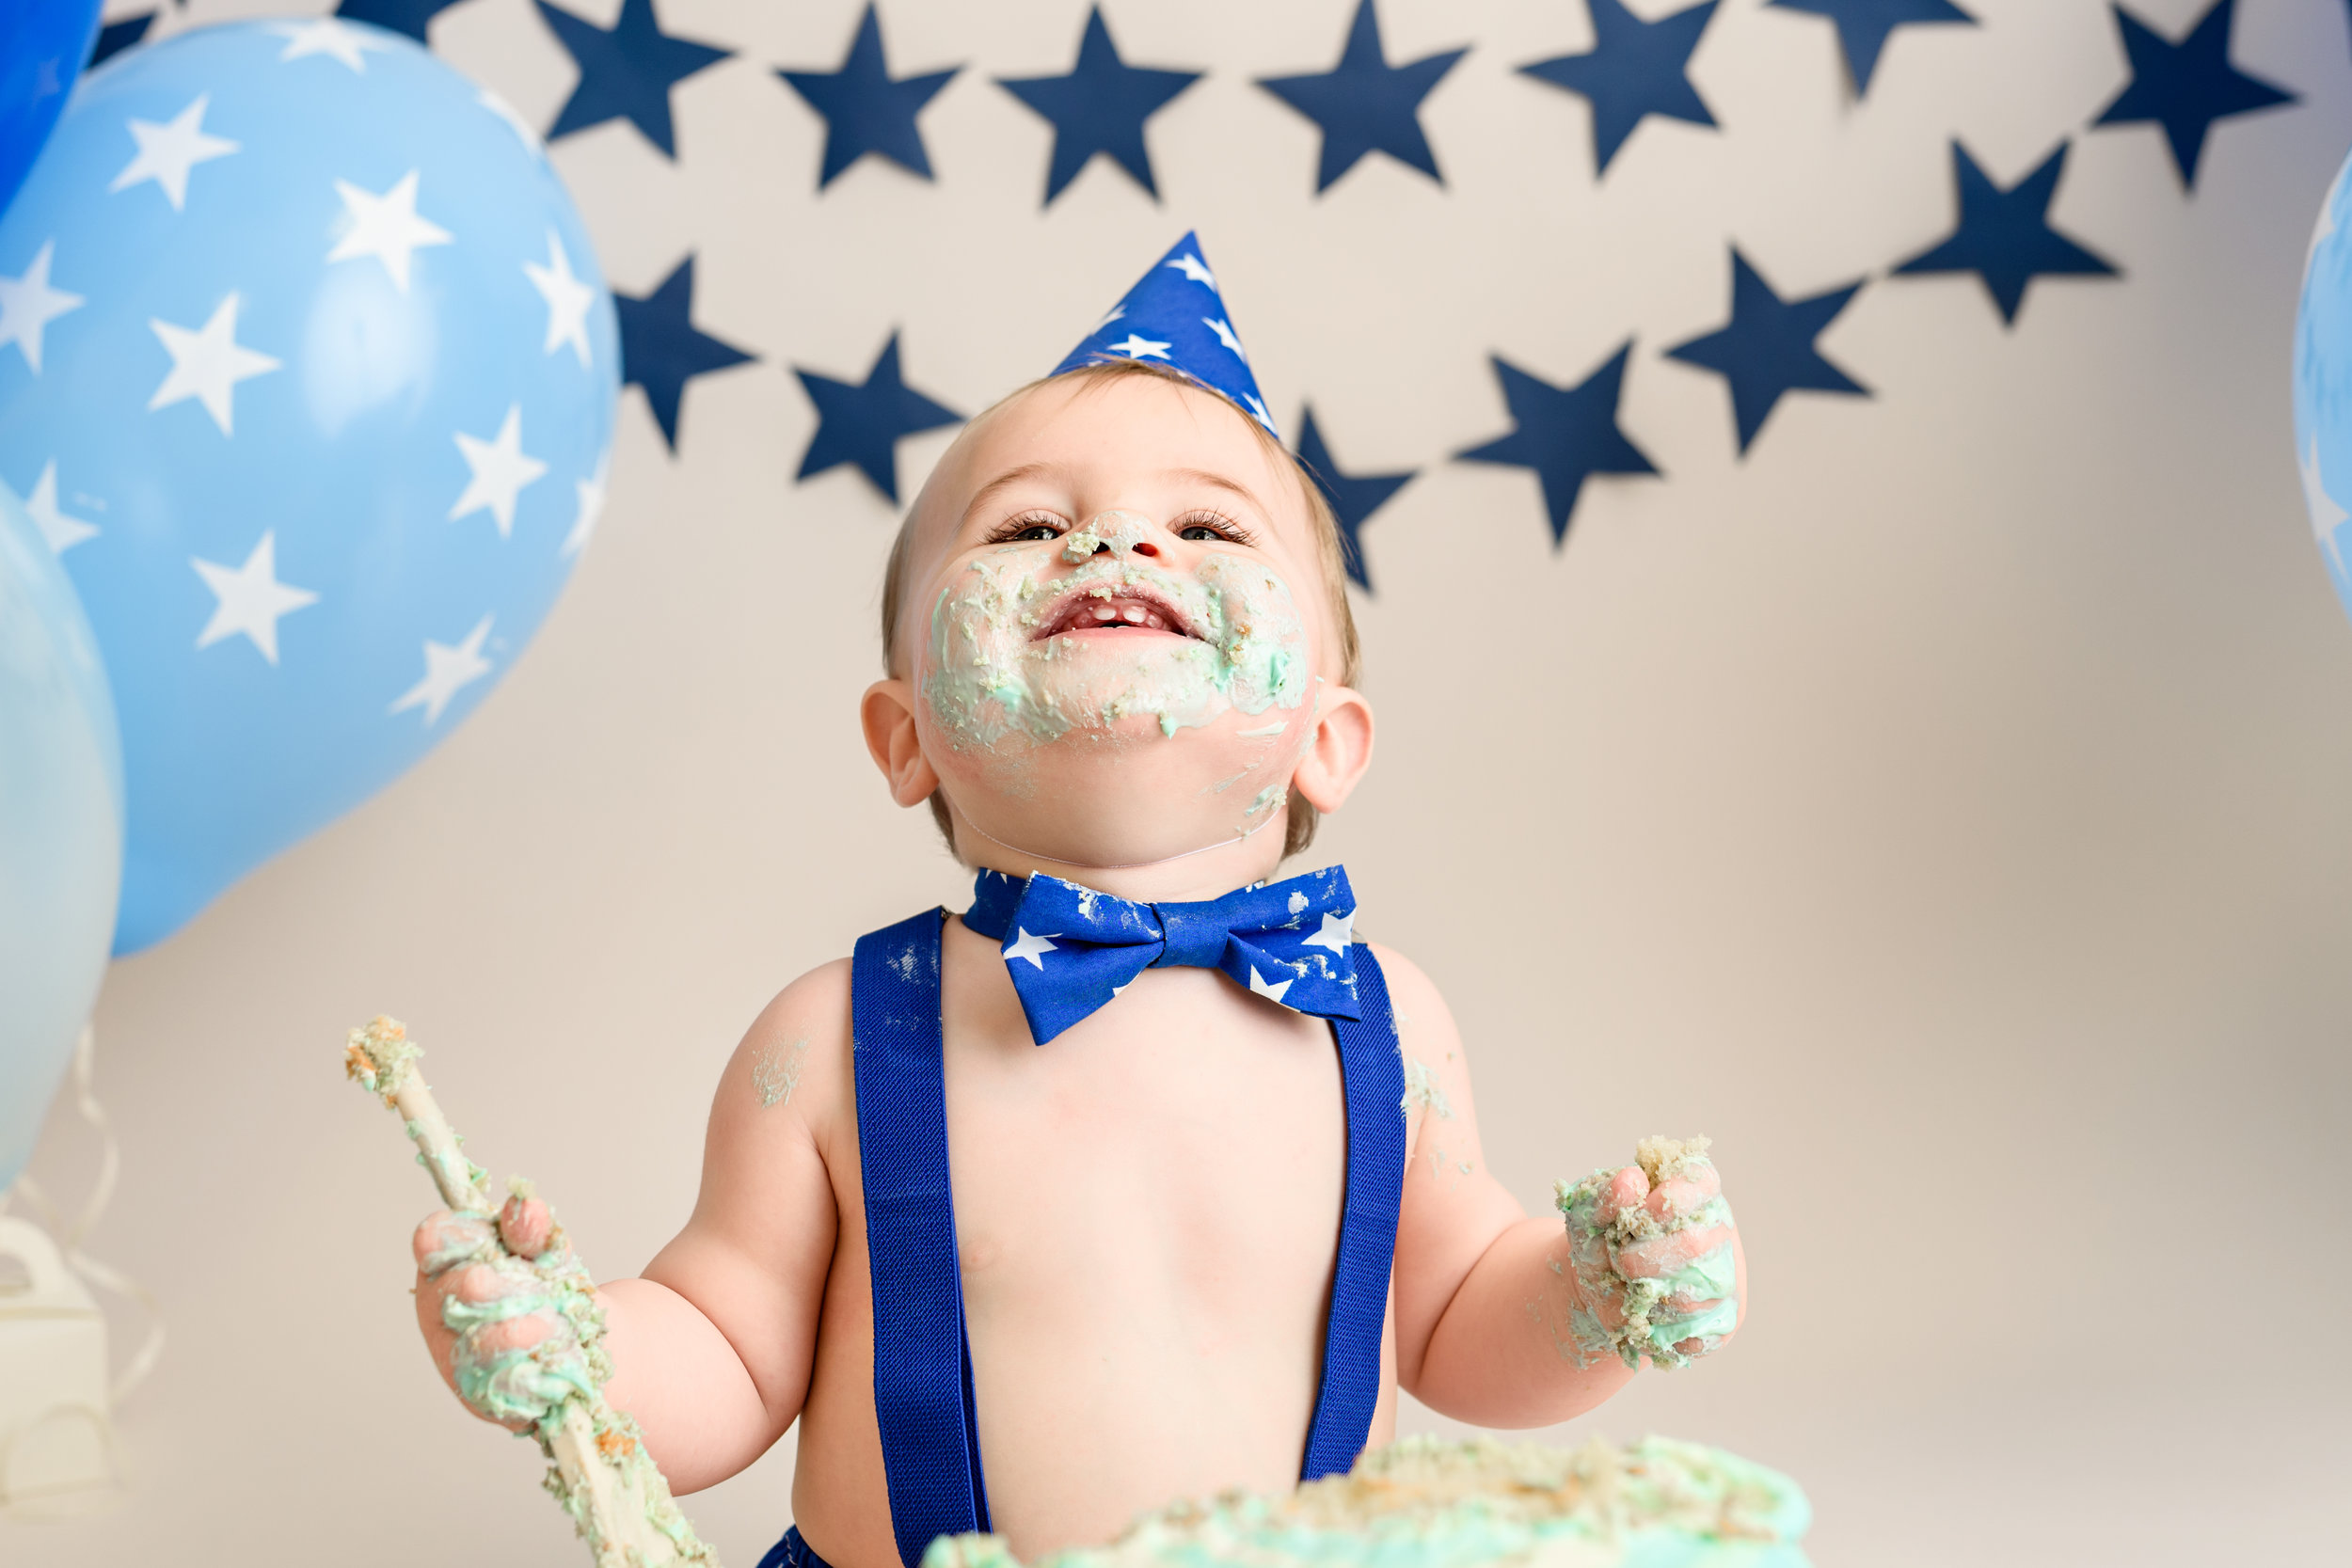 Cake smash, first birthday celebration, Photographer near Bournemouth